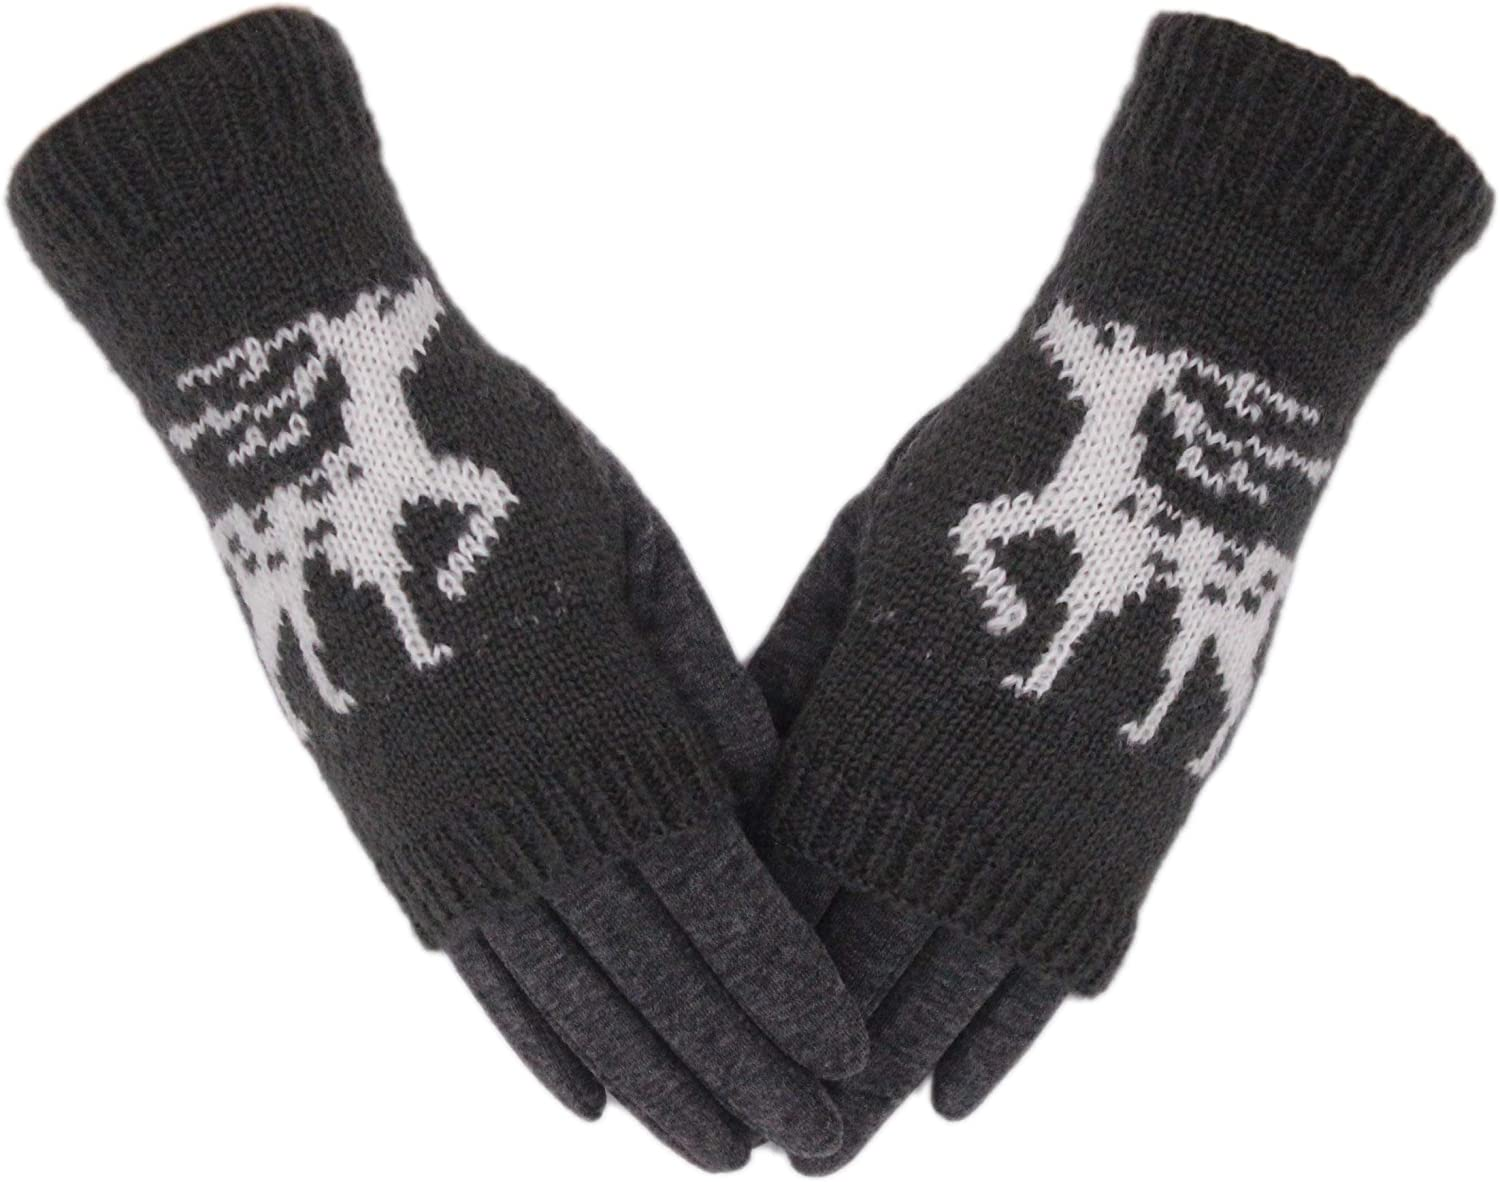 Tomily Winter Knit Warm Gloves For Women Touchscreen Texting Elk Gloves Thick Cotton Fingerless + Full 2-in-1